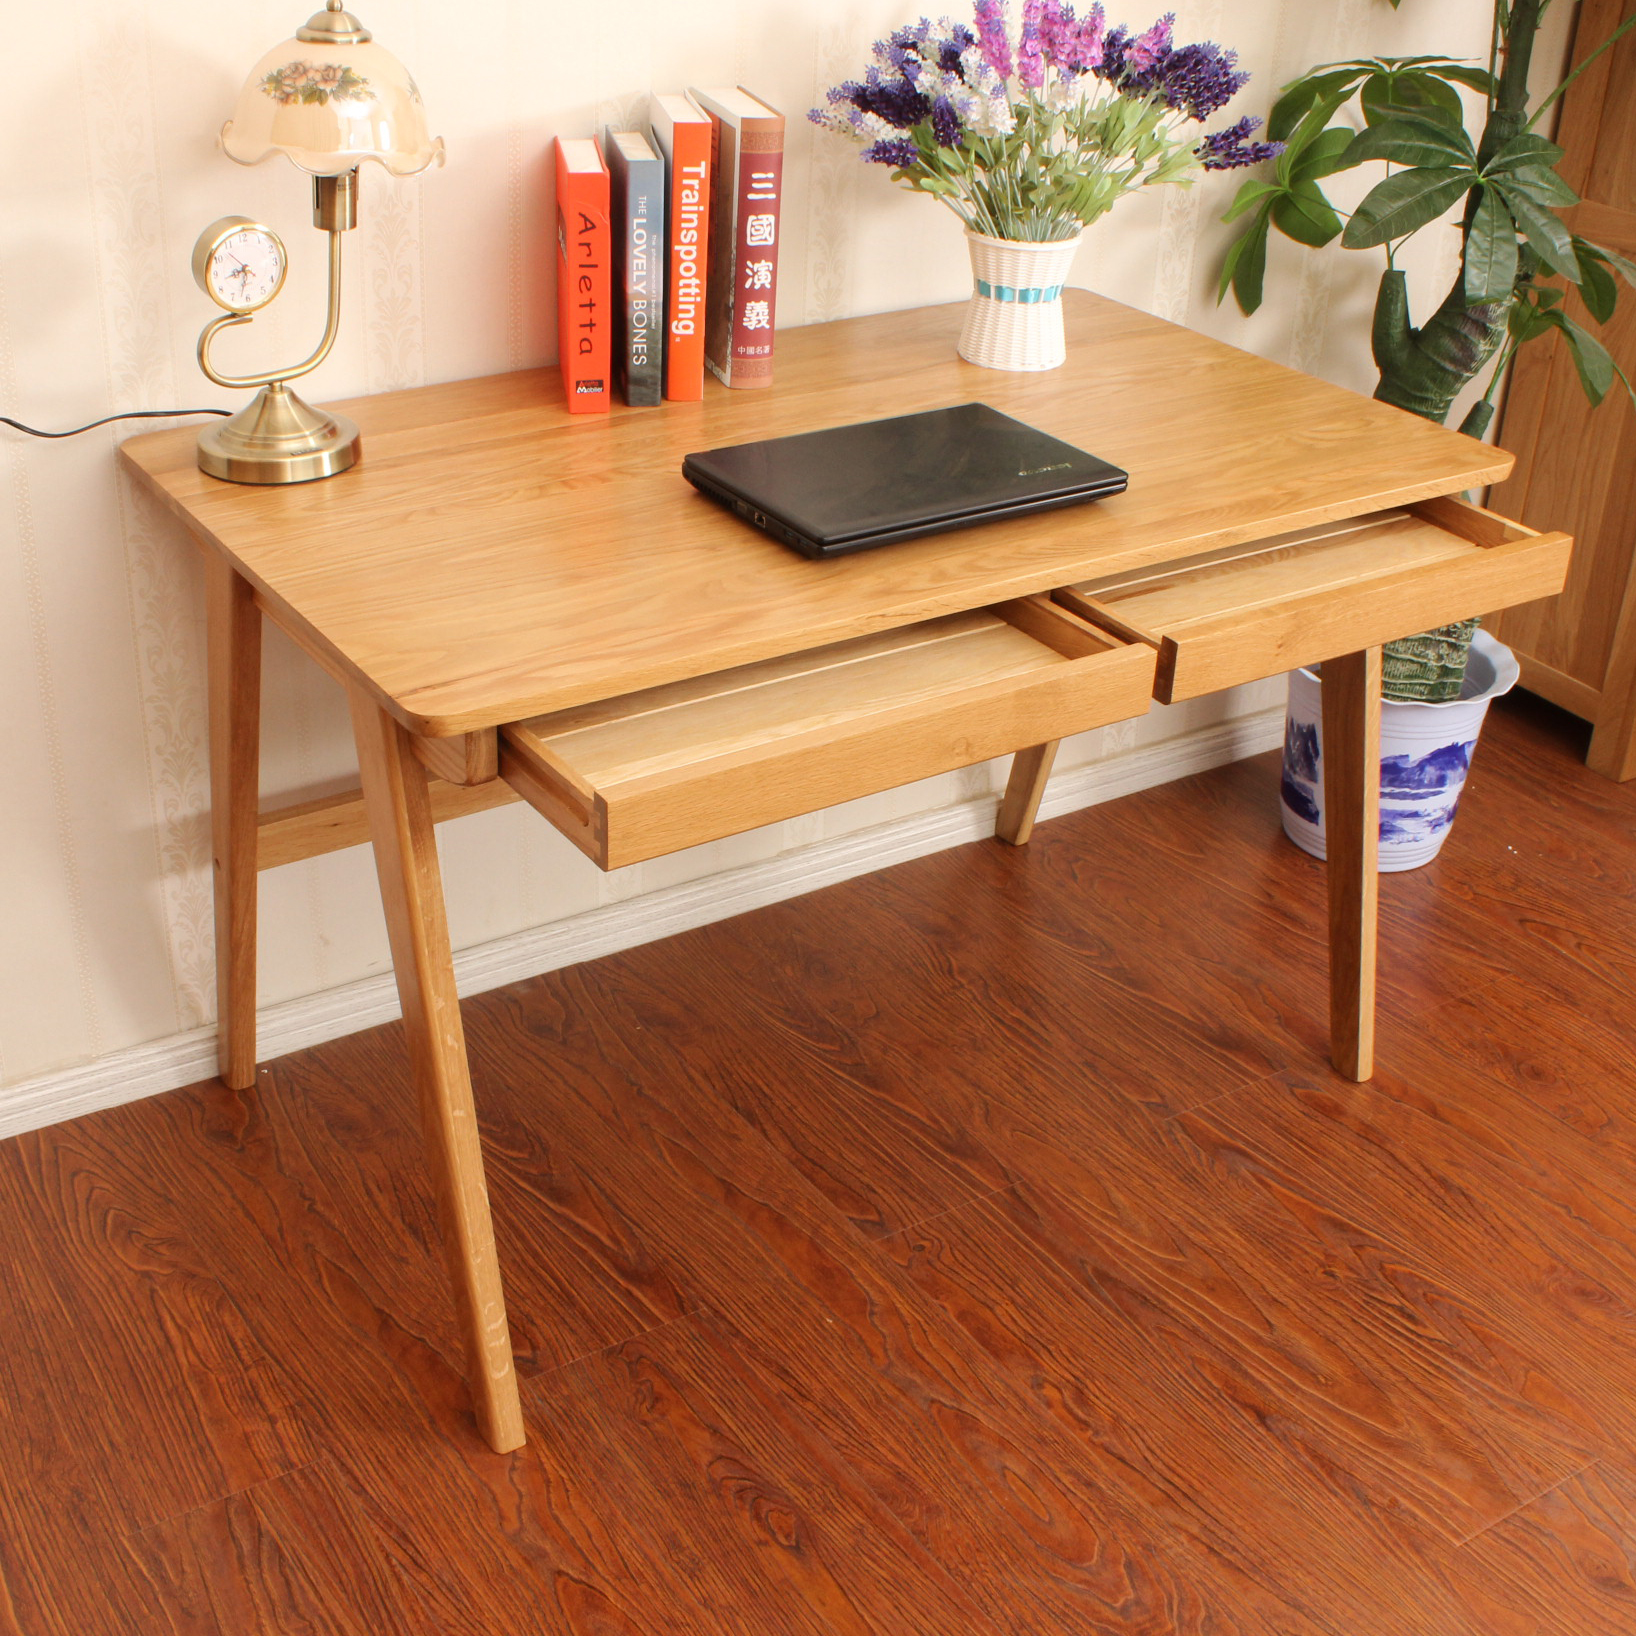 Table Direct Study Tables Oak Wood Desk With Drawers